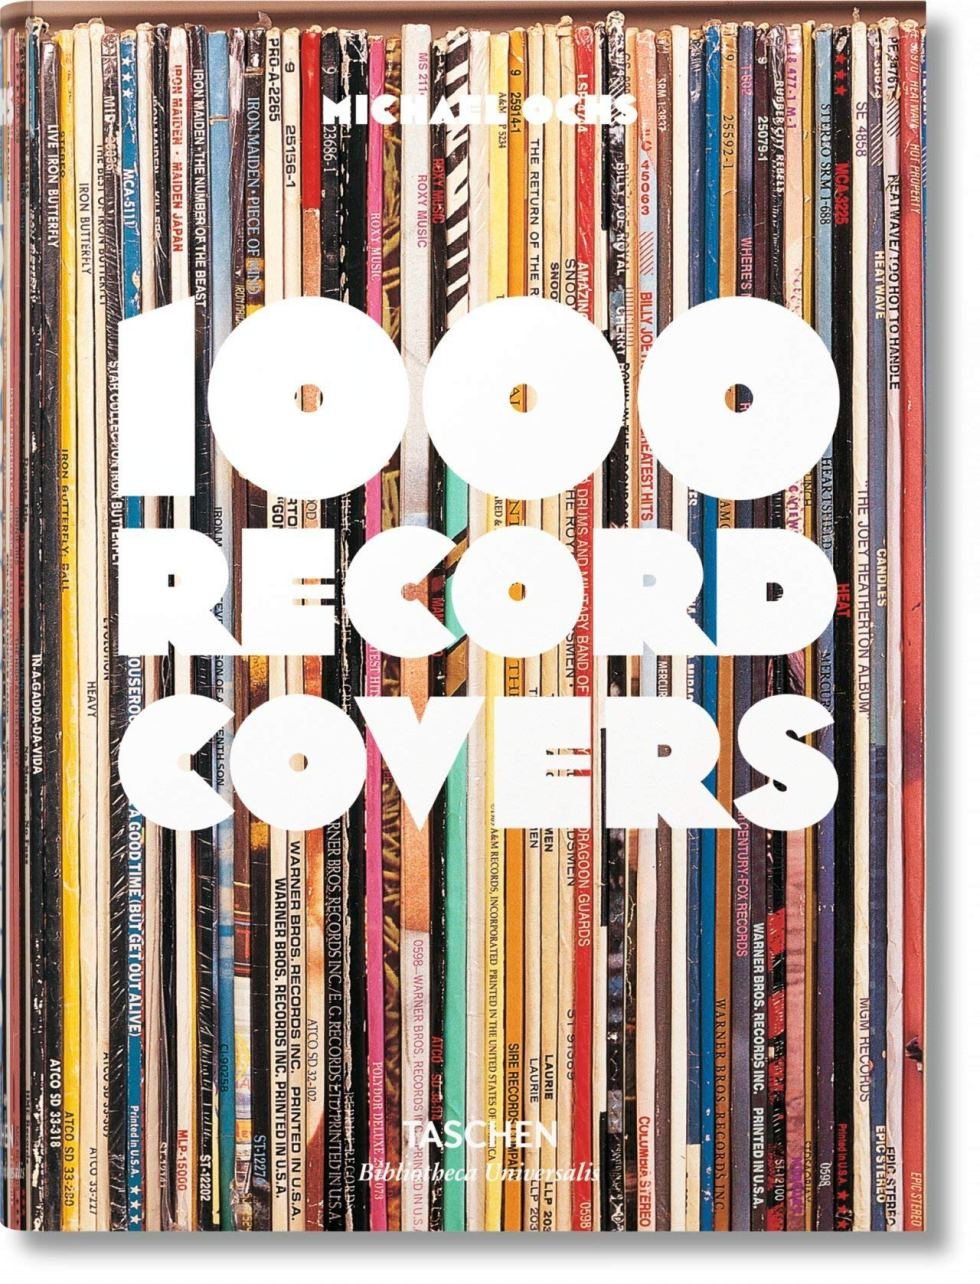 1000 Record Covers book gift for music lovers